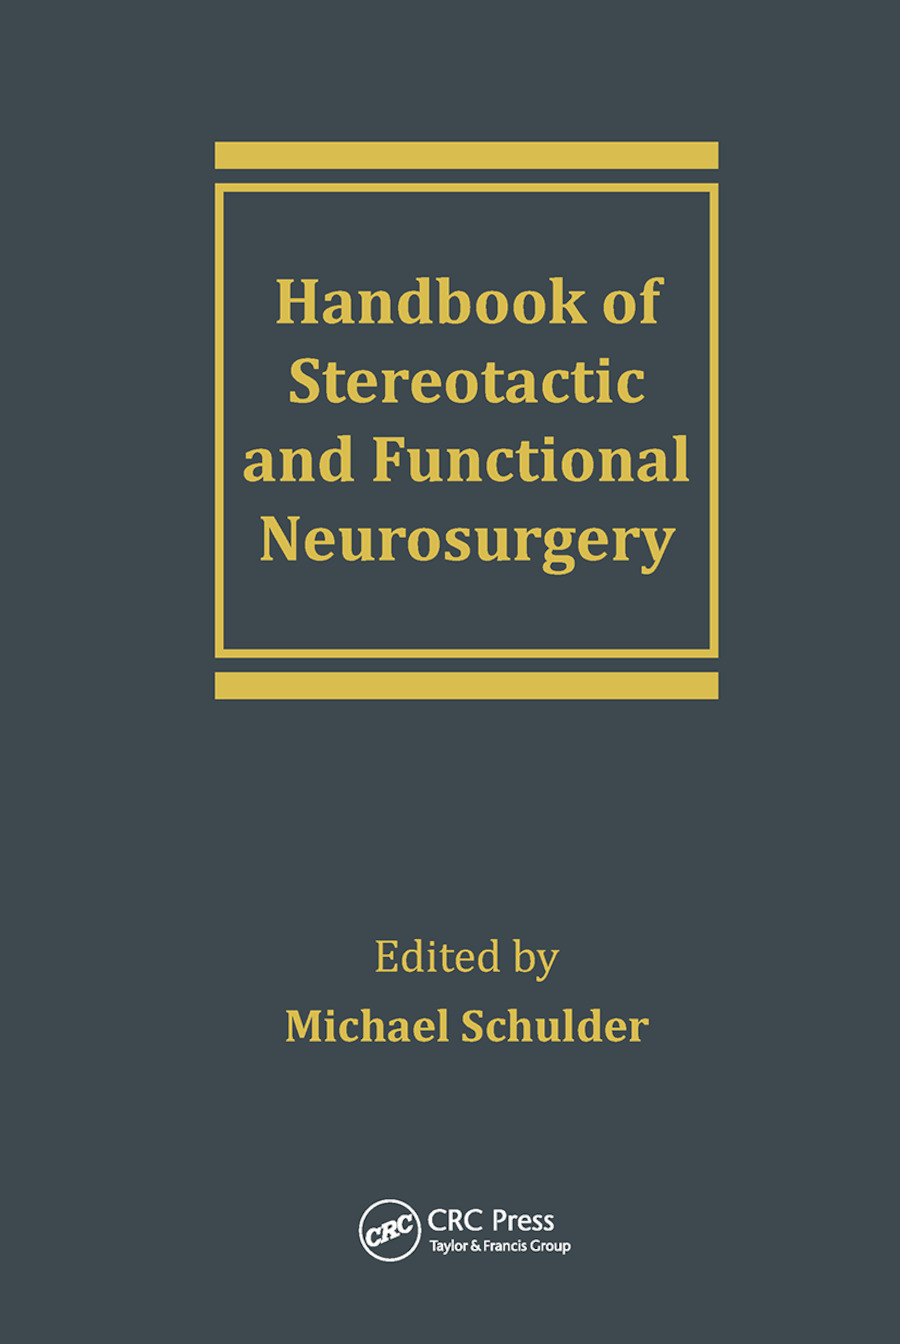 Handbook of Stereotactic and Functional Neurosurgery book cover